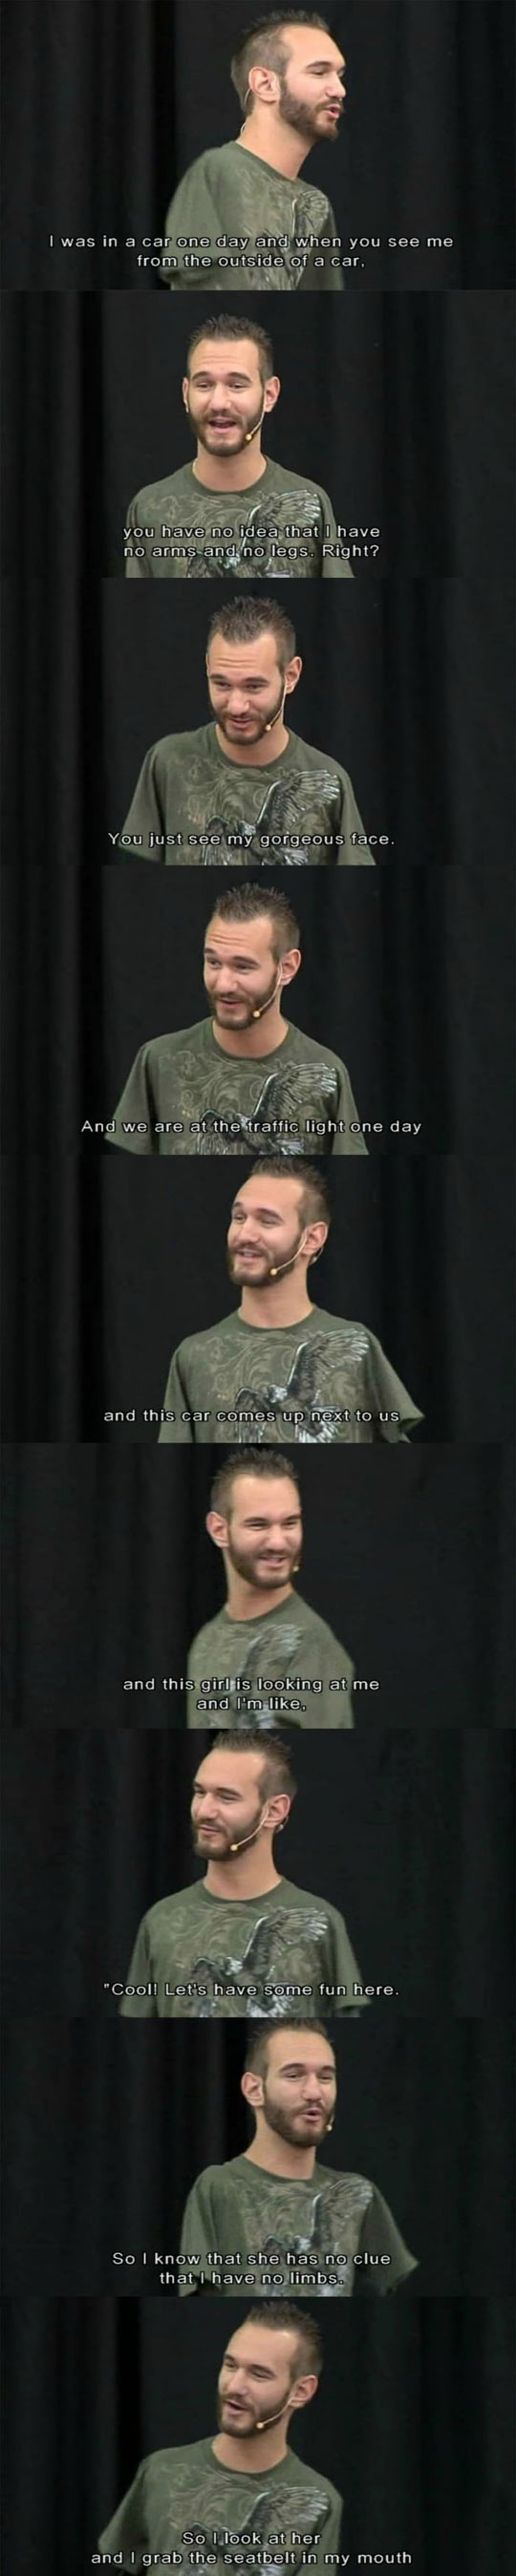 Nick Vujicic Has Sense of Humor